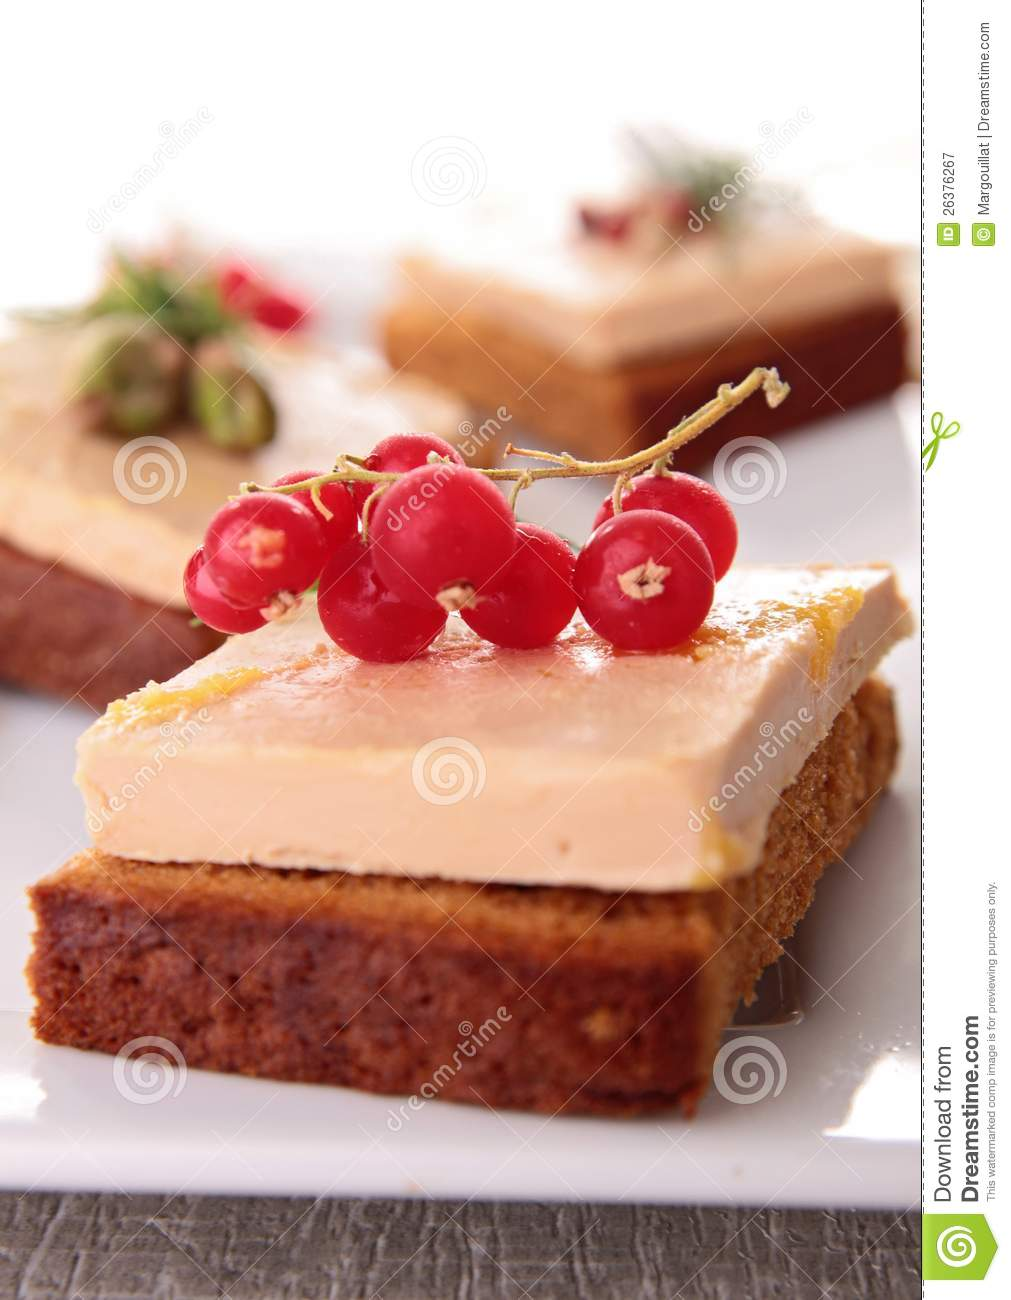 Appetizer canape royalty free stock photography image for Appetizer canape